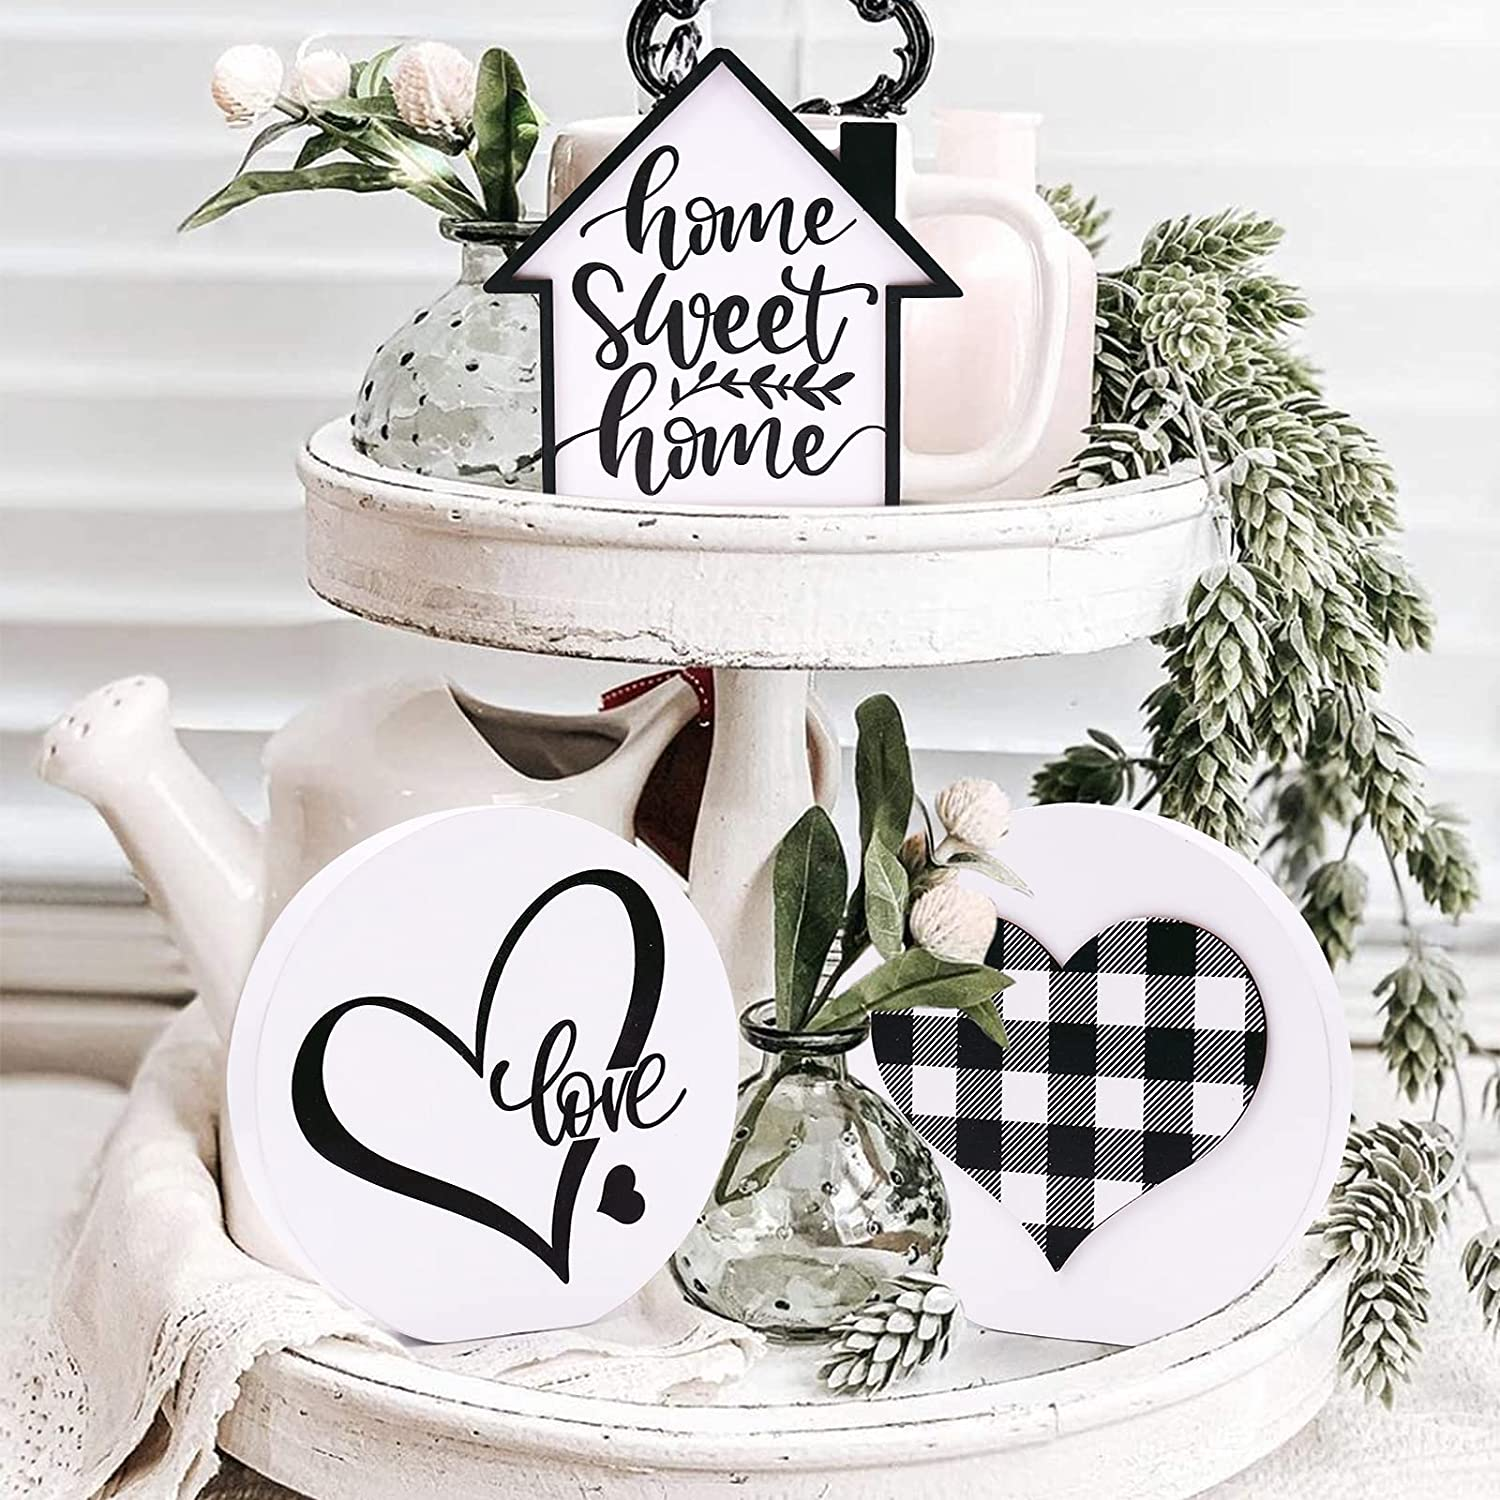 Huray Rayho Home Sweet Home Tiered Tray Decor Buffalo Plaid Heart Mini 3D Wood Signs Farmhouse Rae Dunn Inspired Love Round Sign Rustic Kitchen Bathroom Decorations 3 Pieces